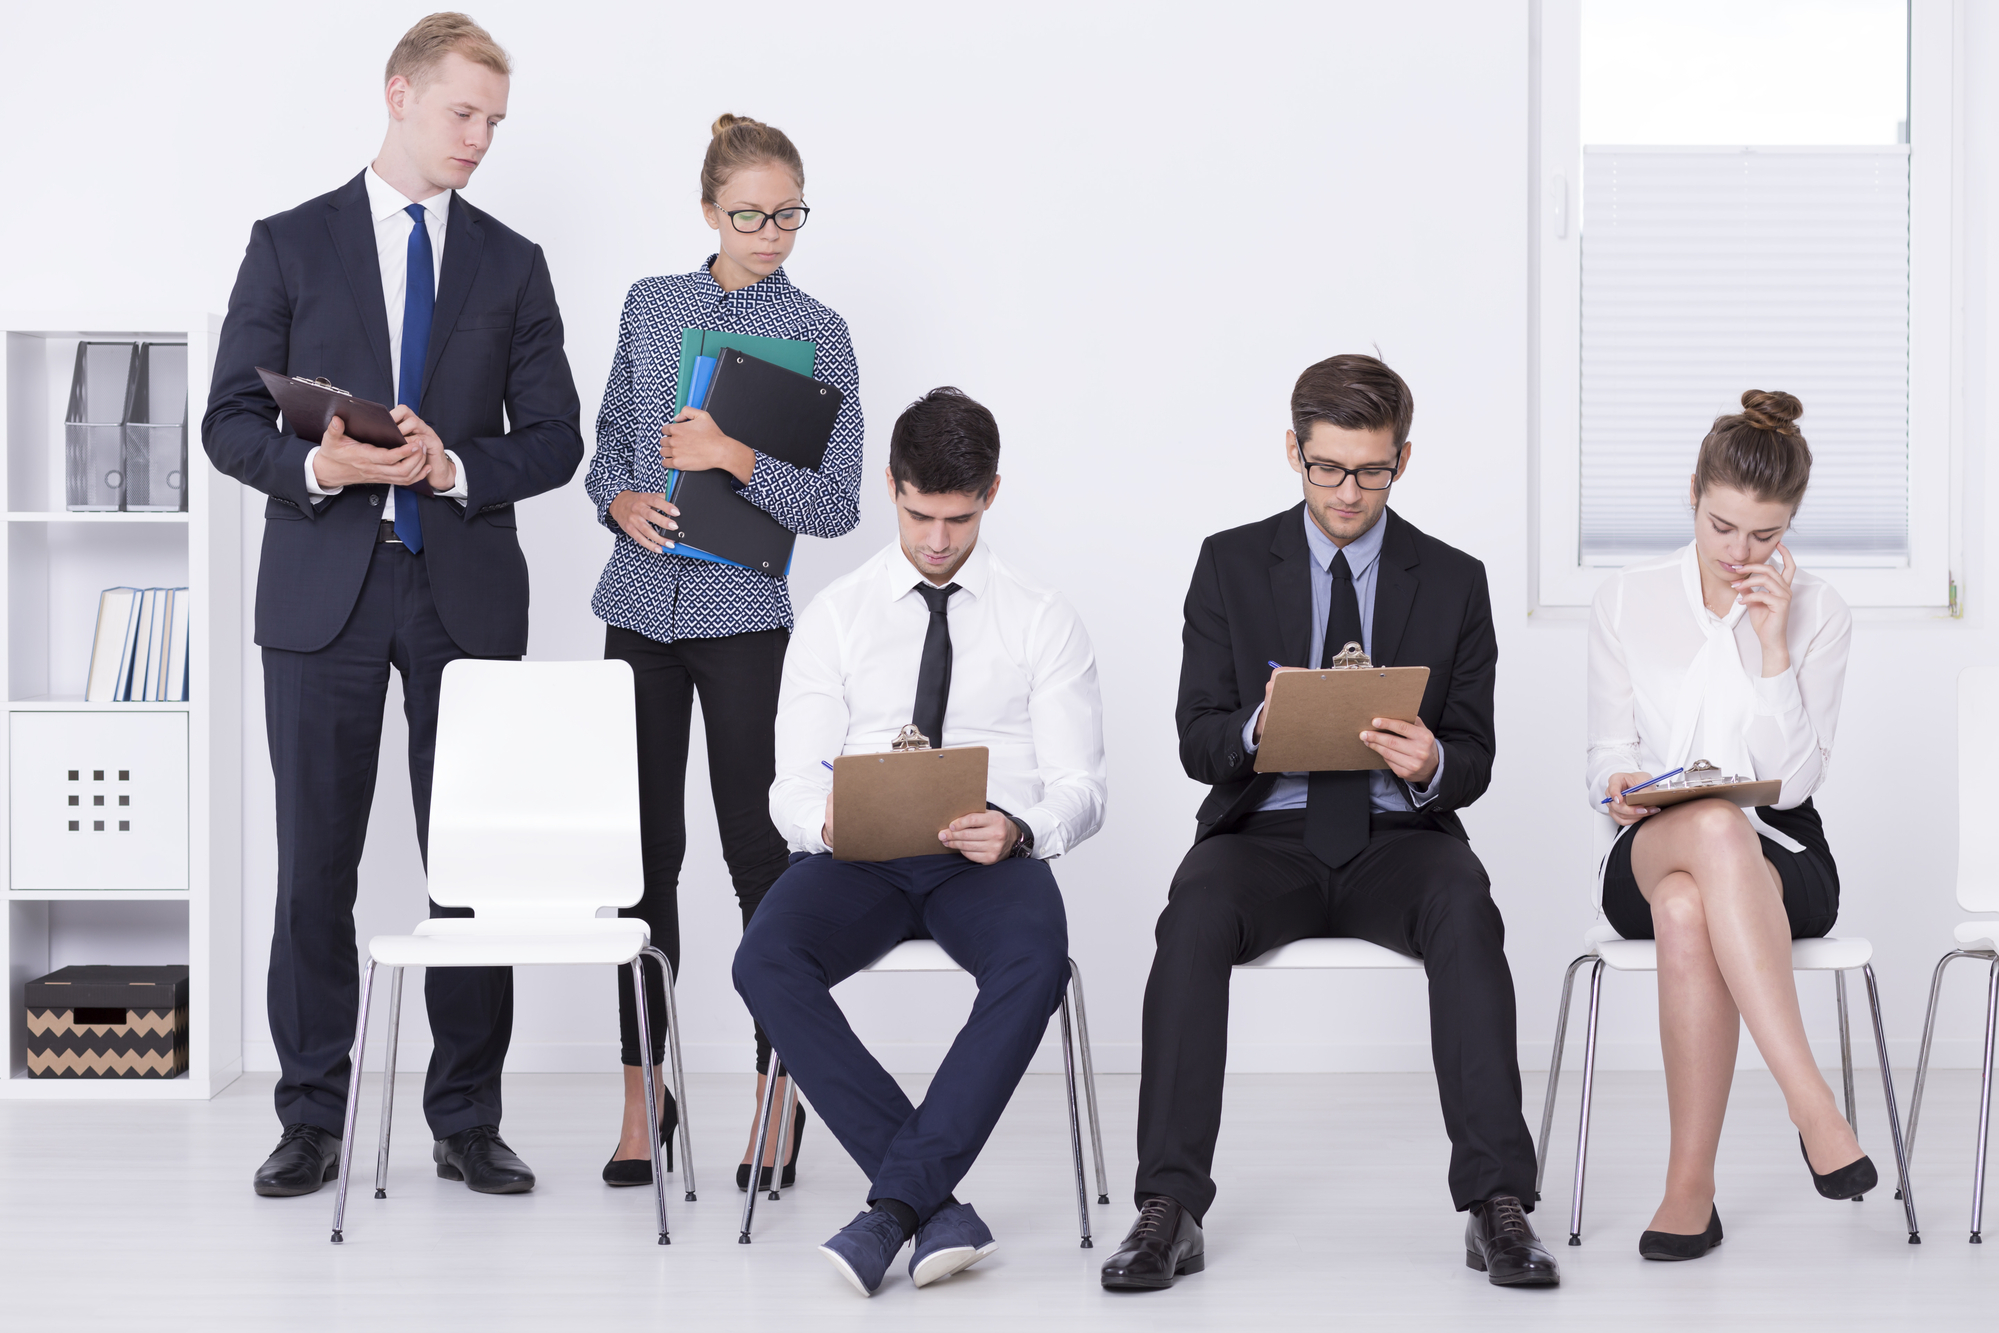 A row of individuals wearing business apparel seated and filling out forms on clipboards, while two other people watch over them.